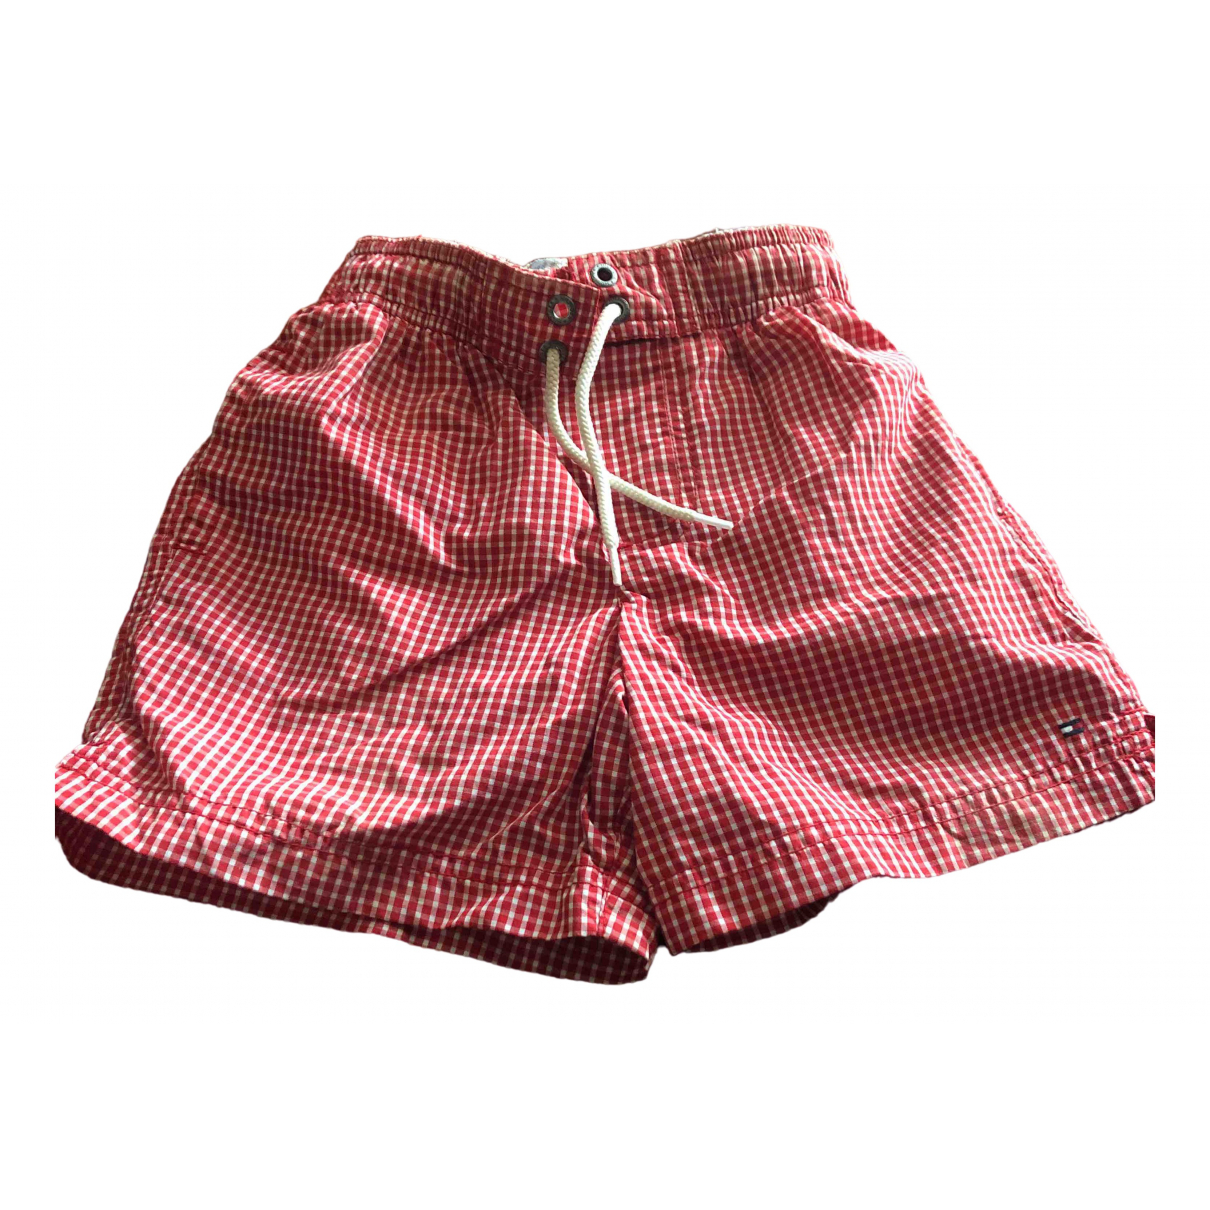 Tommy Hilfiger \N Red Cotton Shorts for Kids 6 months - up to 67cm FR